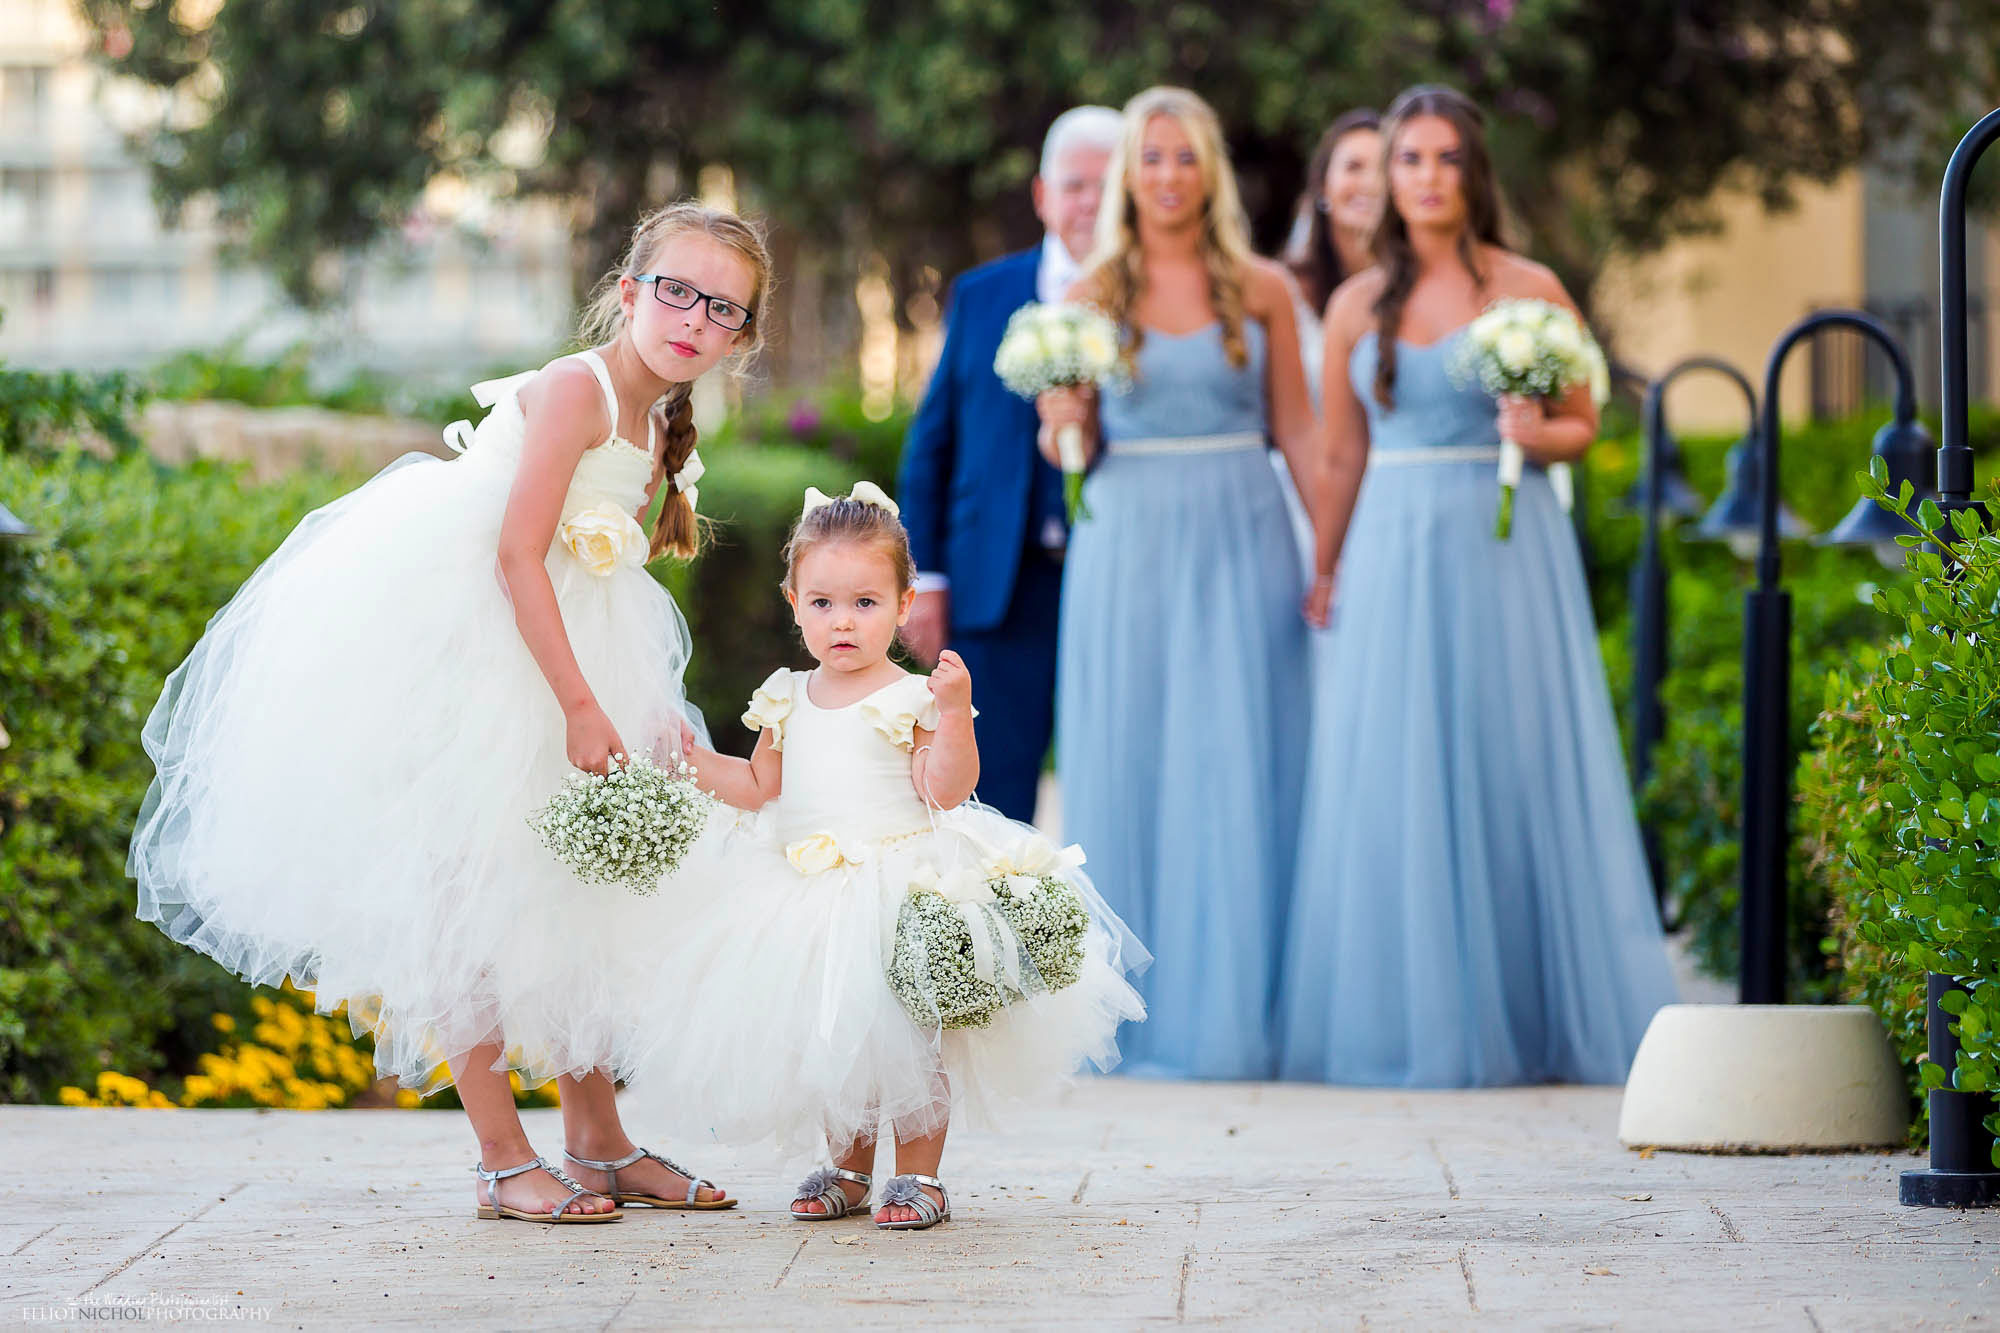 Flower girls followed by bridal party at the start of the wedding procession to the ceremony.